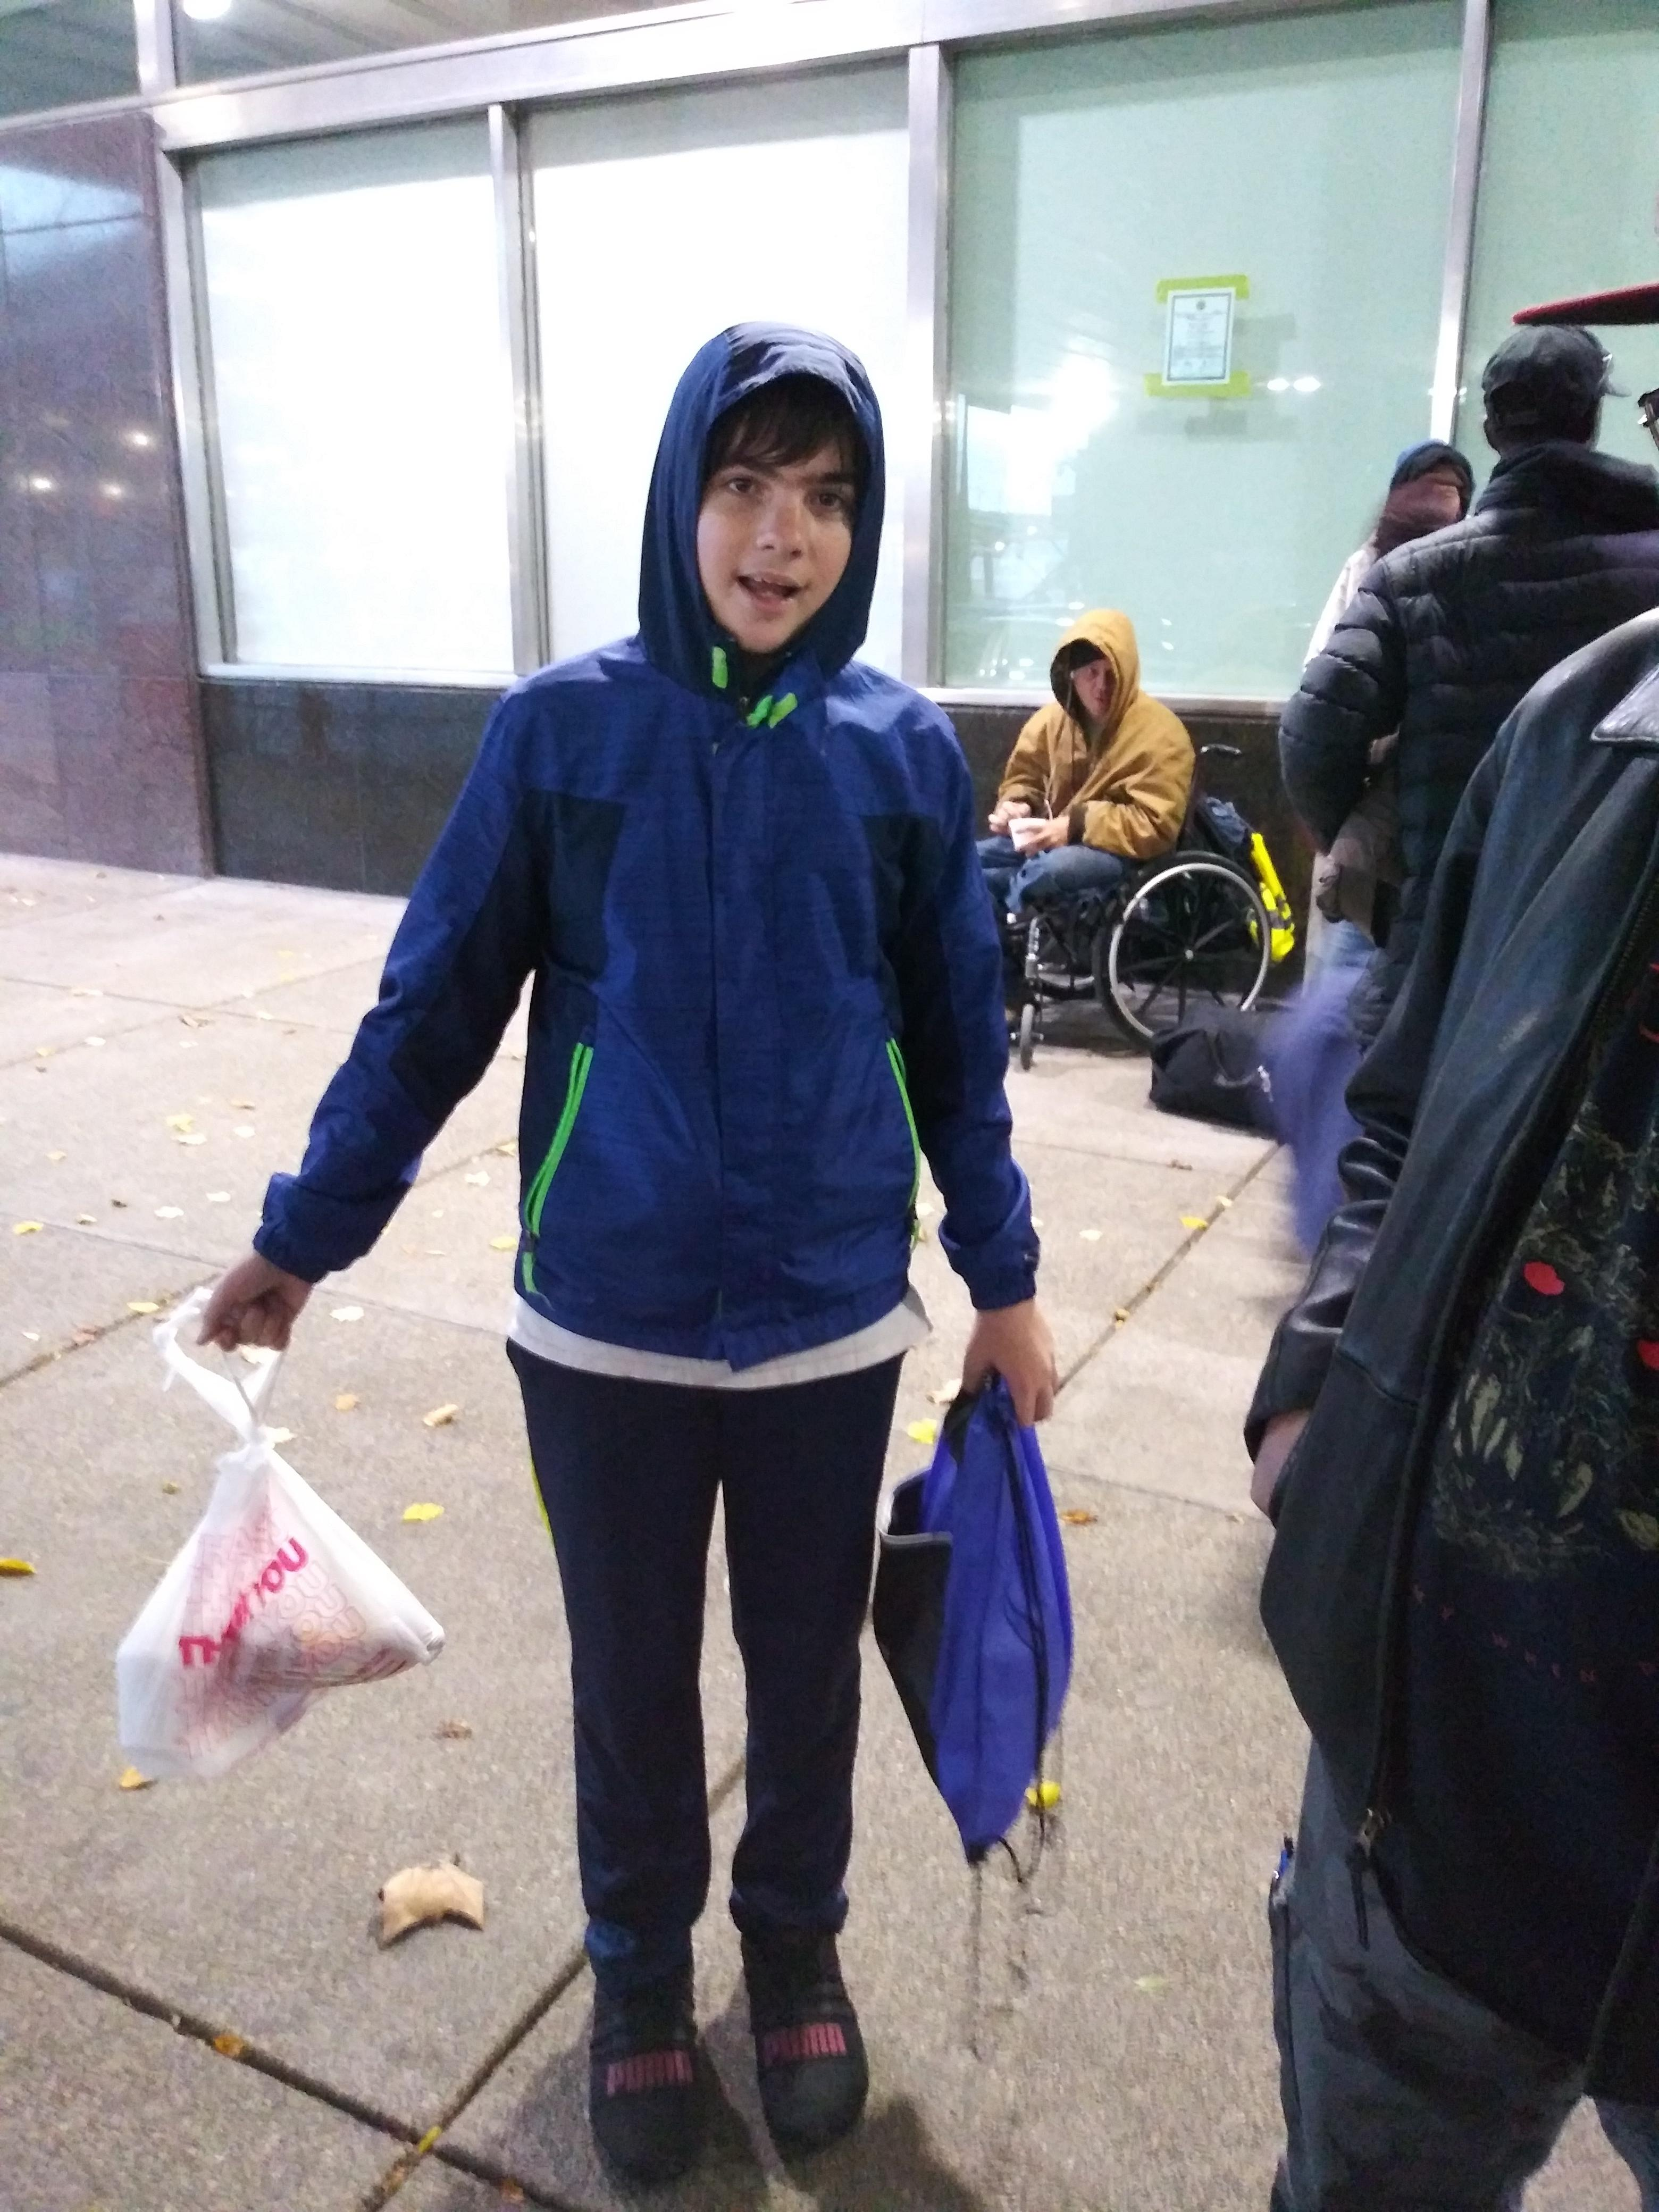 Boy holding bags